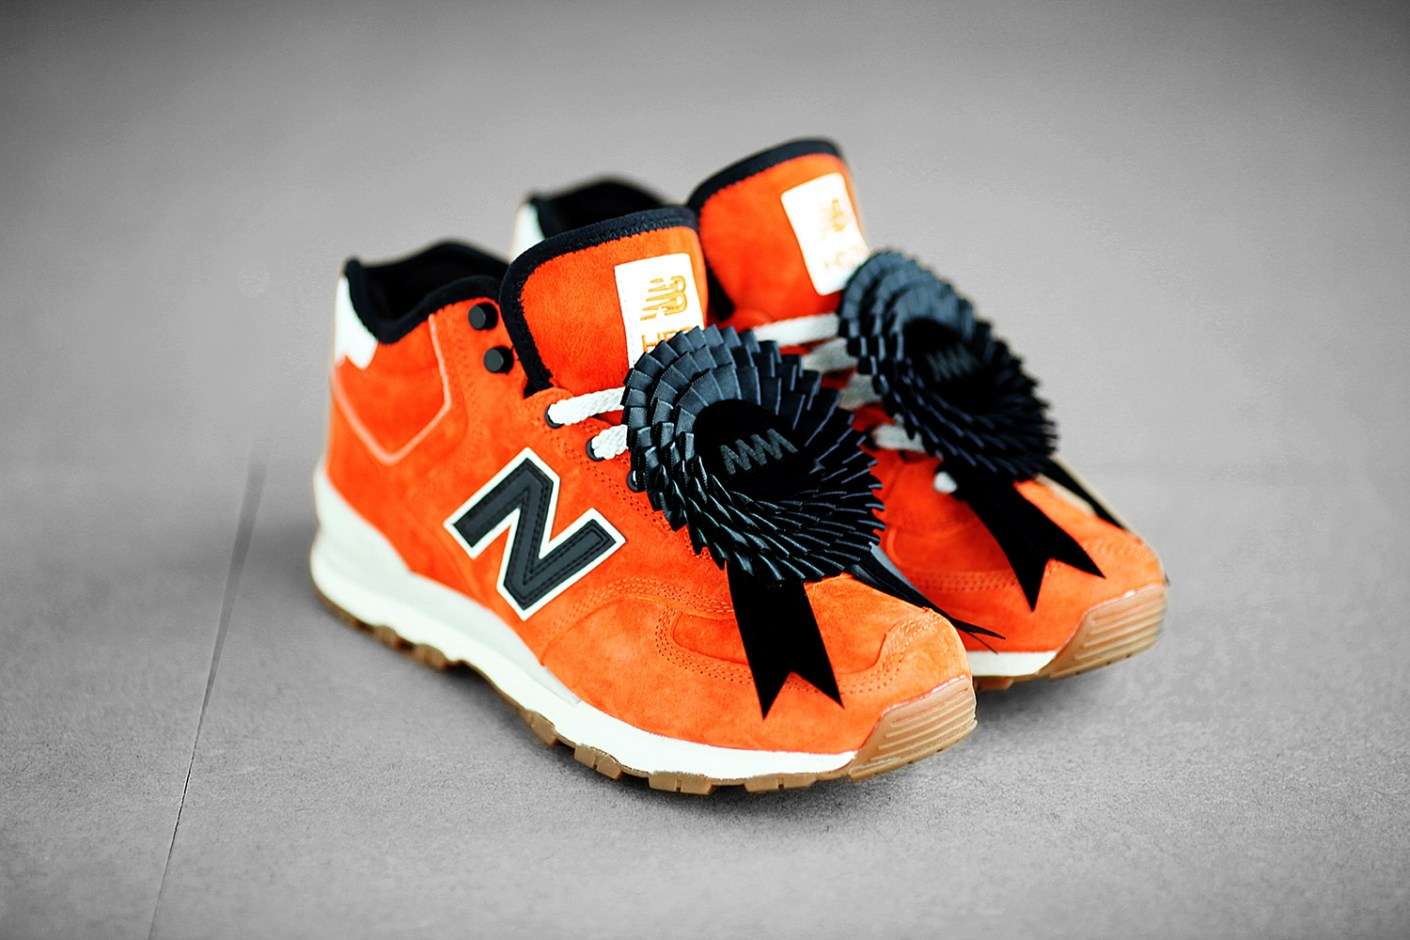 Image of Eric Kot x 4A Like Black x New Balance H574 Further Look